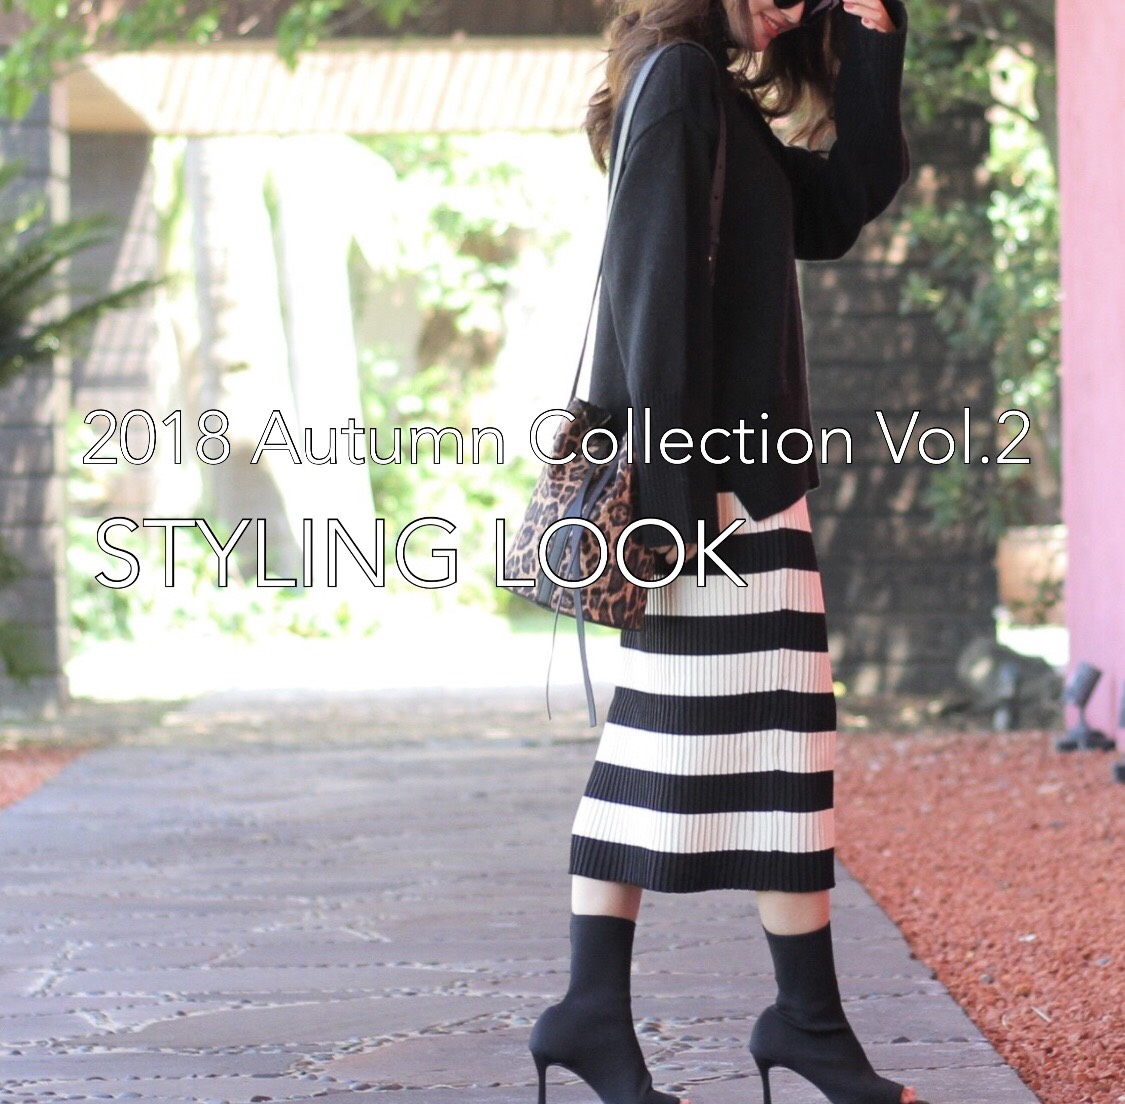 2018 AUTUMN COLLECTION VOL.2 STYLING LOOK